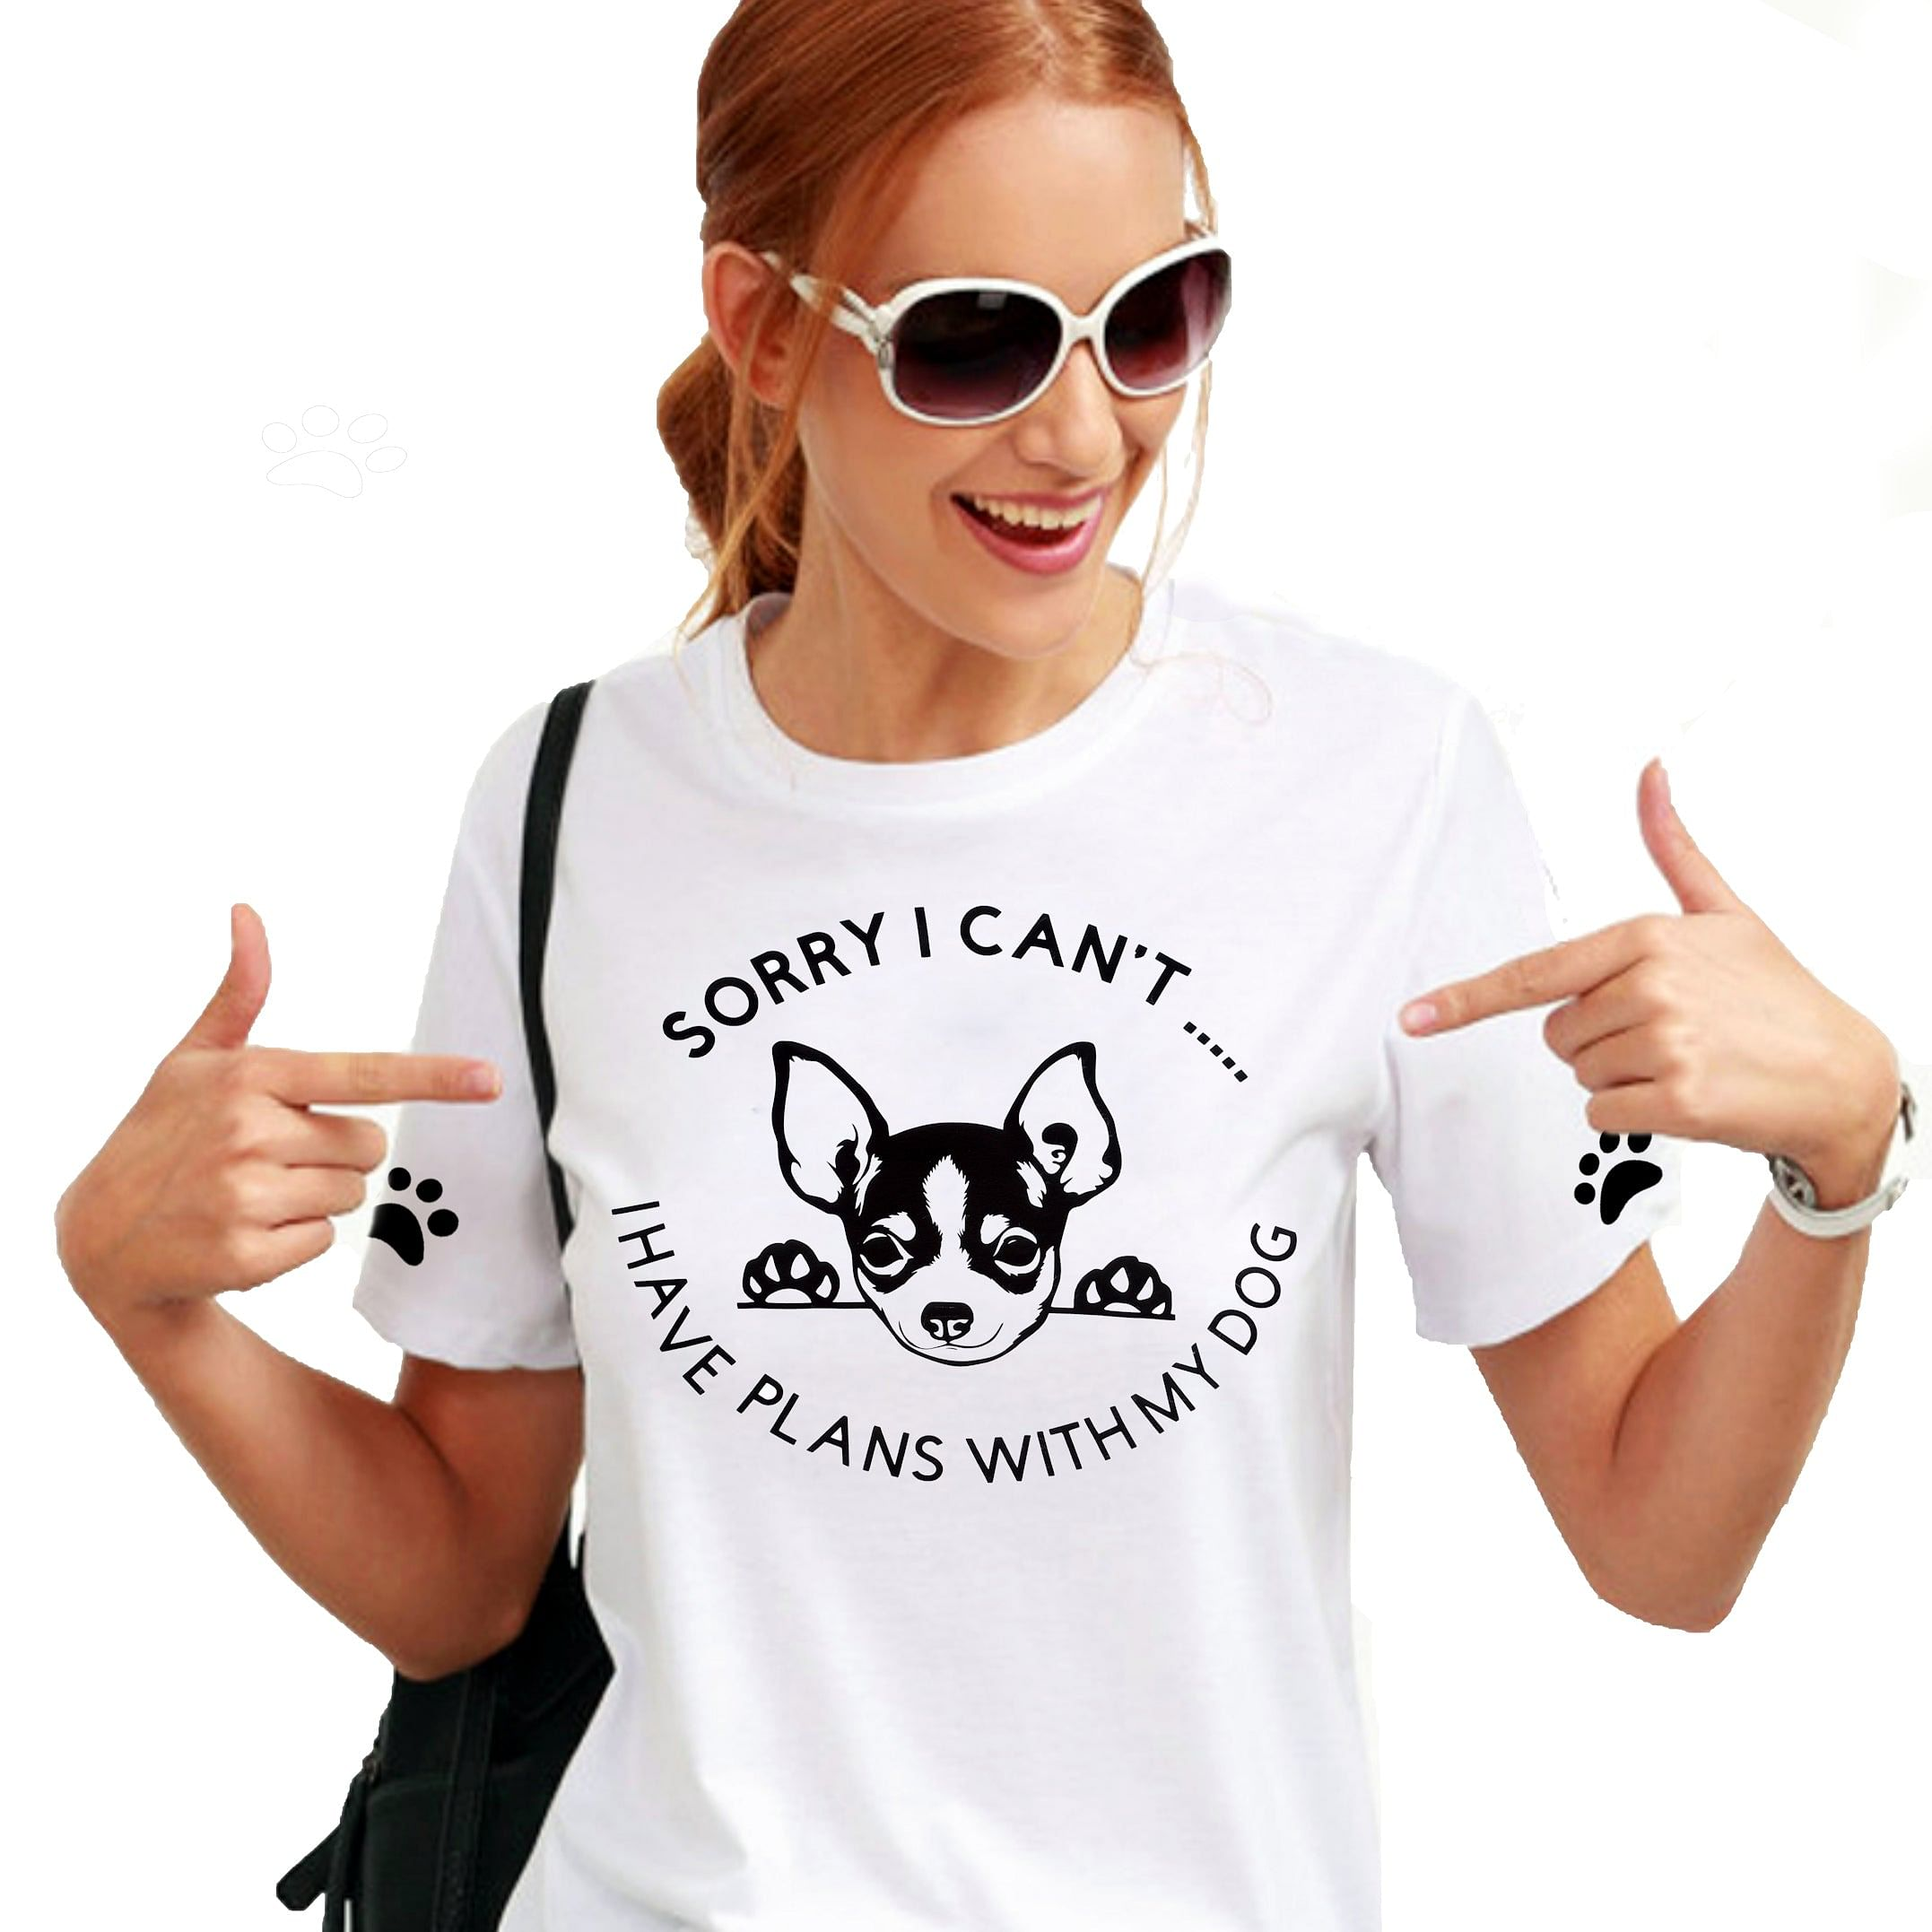 Funny Saying Dog Doggy Gildan T-Shirt Top  Gift White Cotton Lightweight Your Dog Breed Can be Added To Shirt